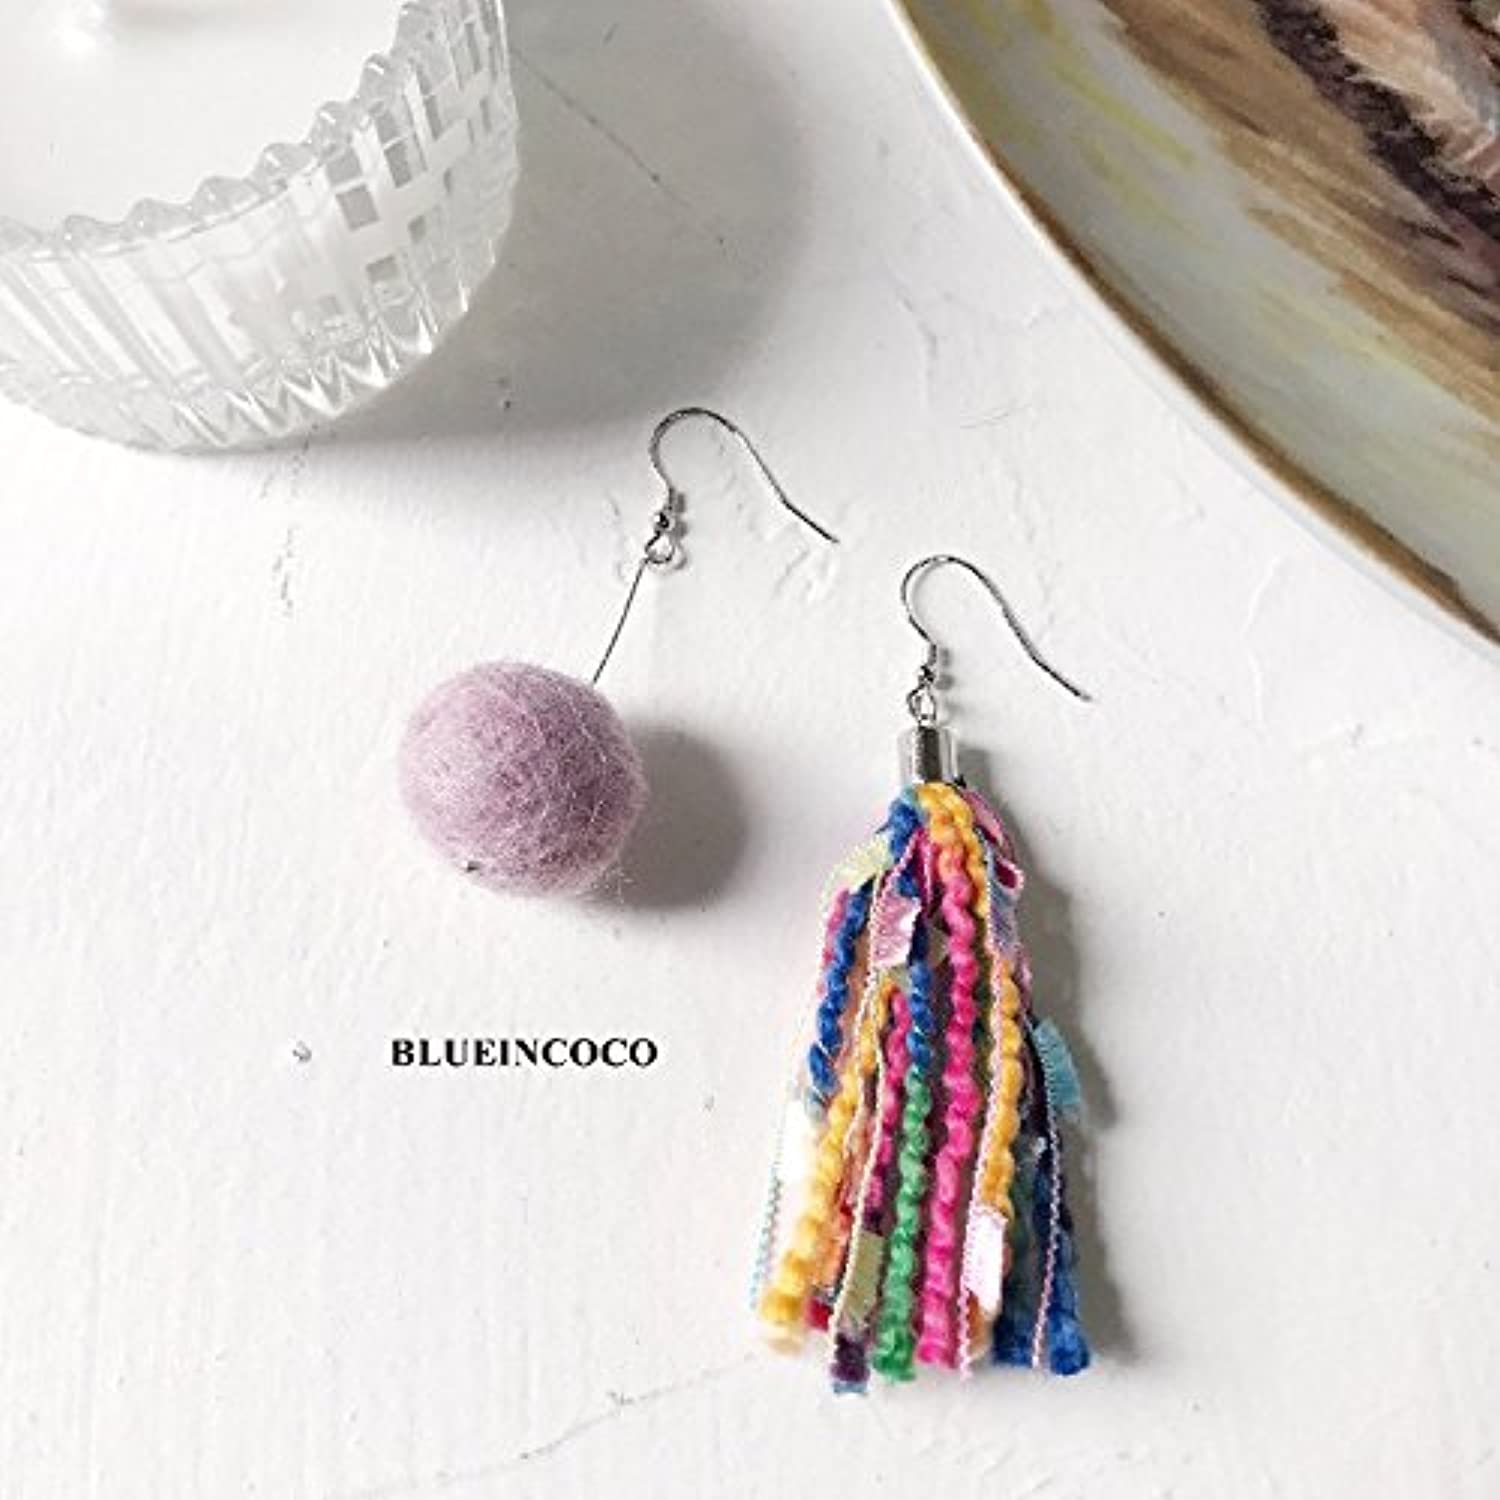 Personalized Fashion Hair Every Evening Ball s925 Silver Asymmetrical Handmade Felted Wool Tassel Earrings Women Girls